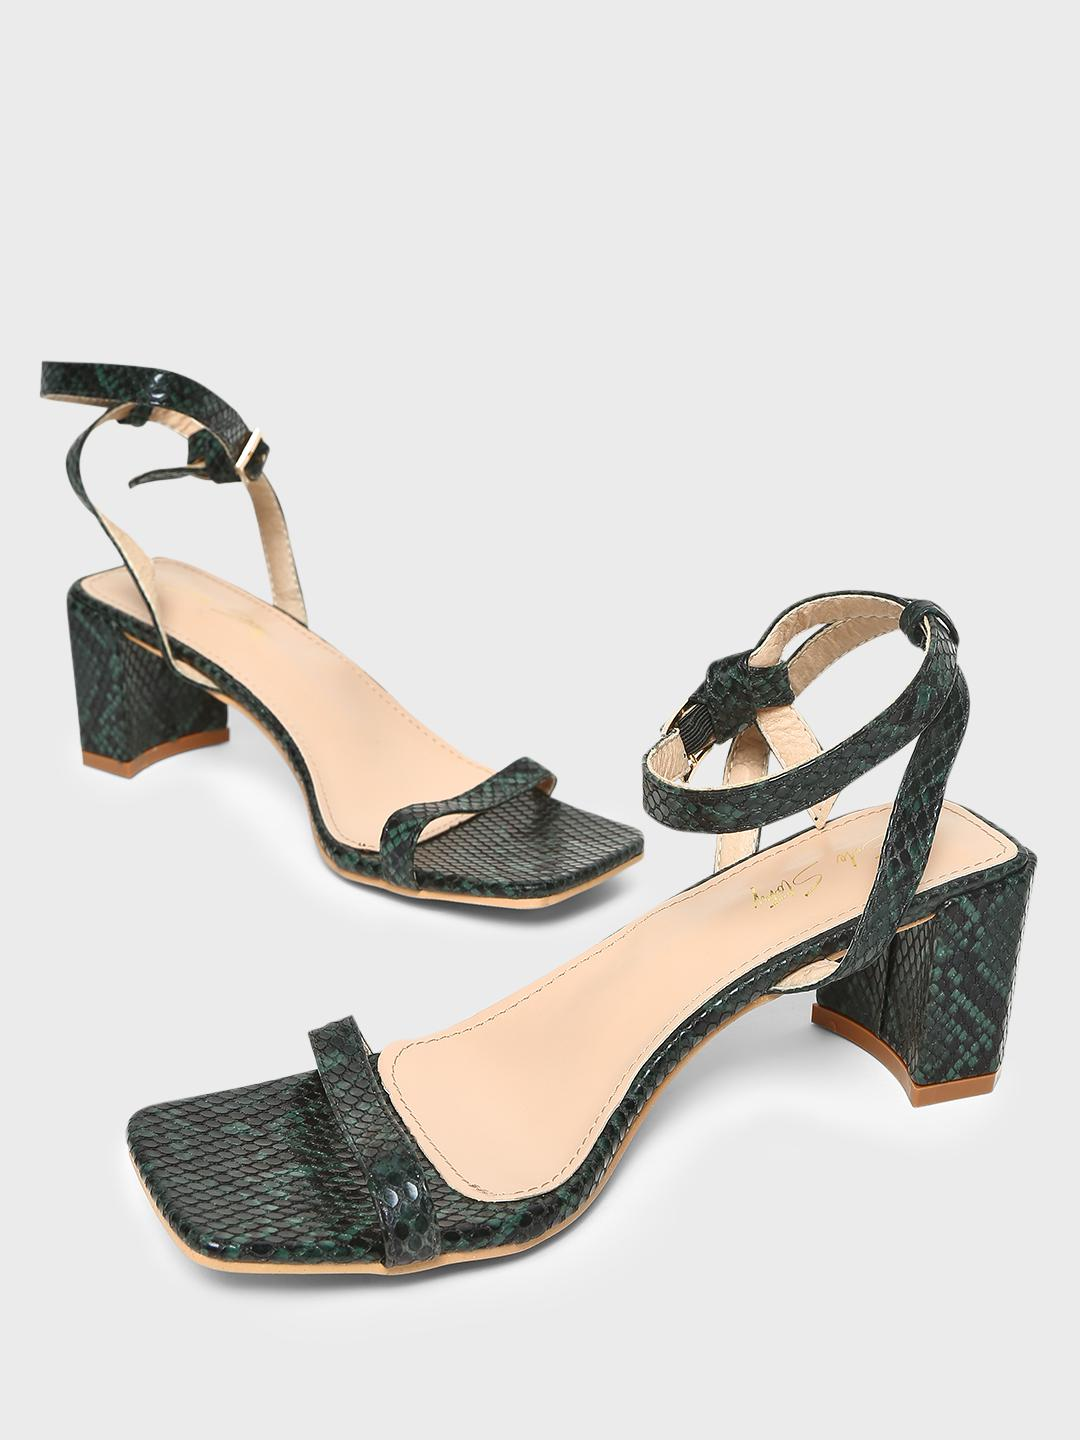 Sole Story Green Snakeskin Print Block Heeled Sandals 1